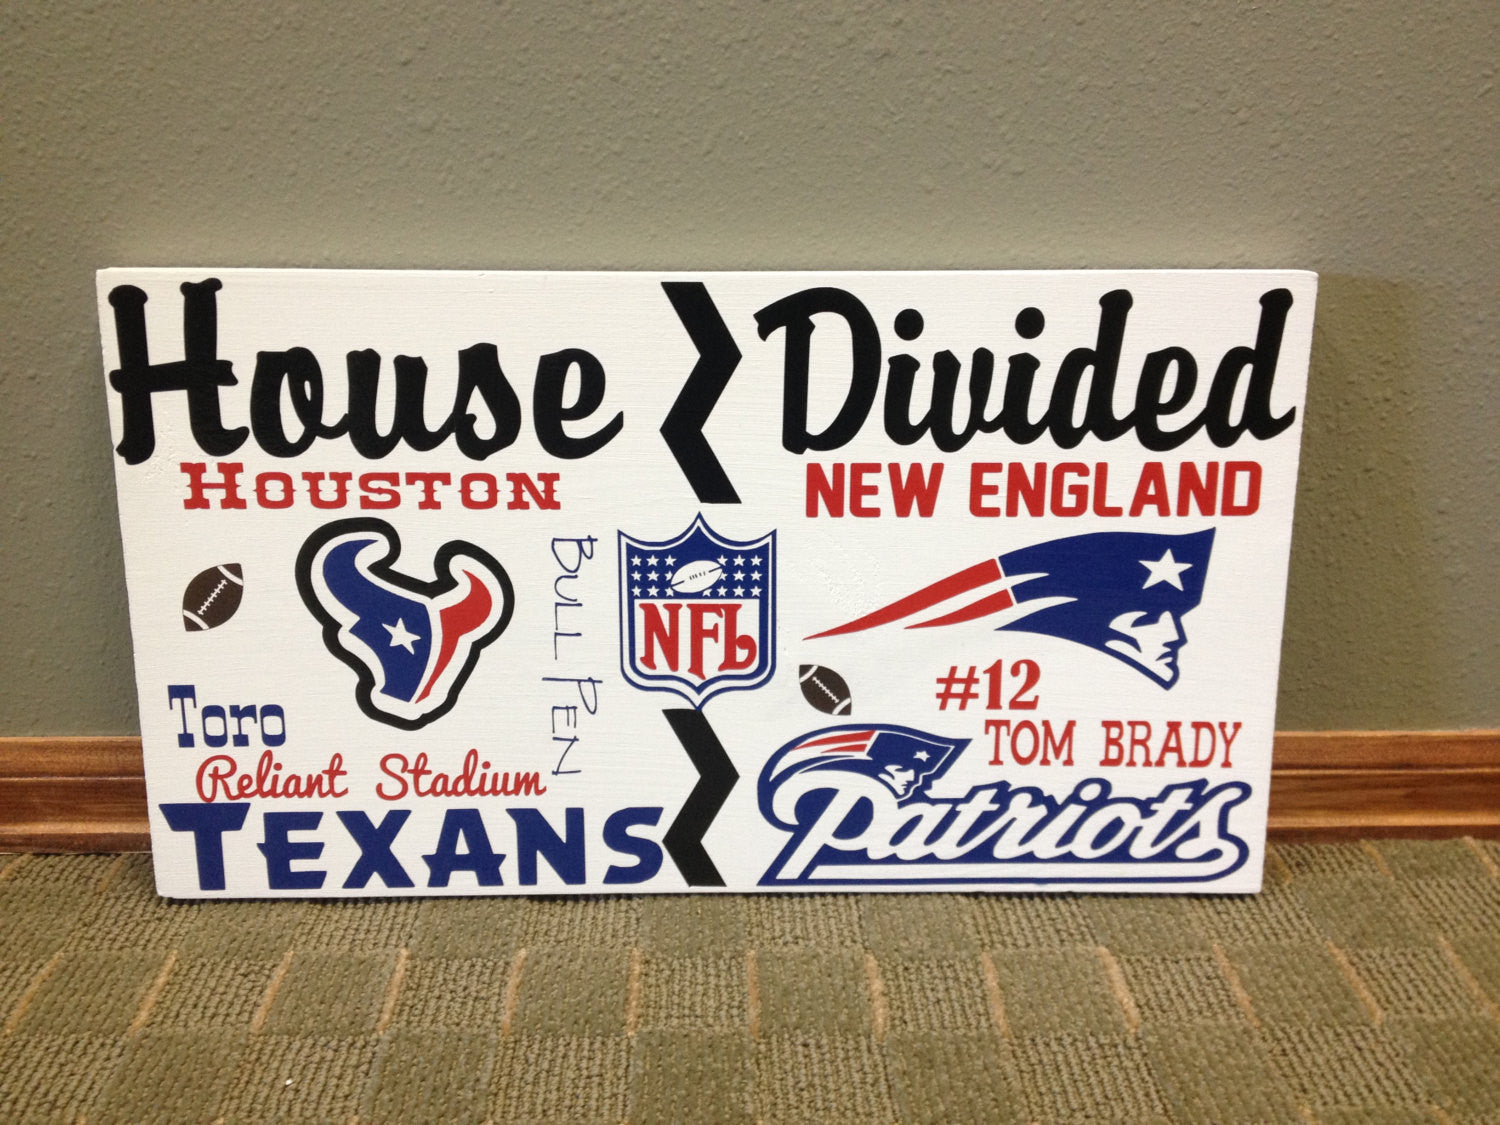 Wooden House Divided NFL Patriots vs Texans